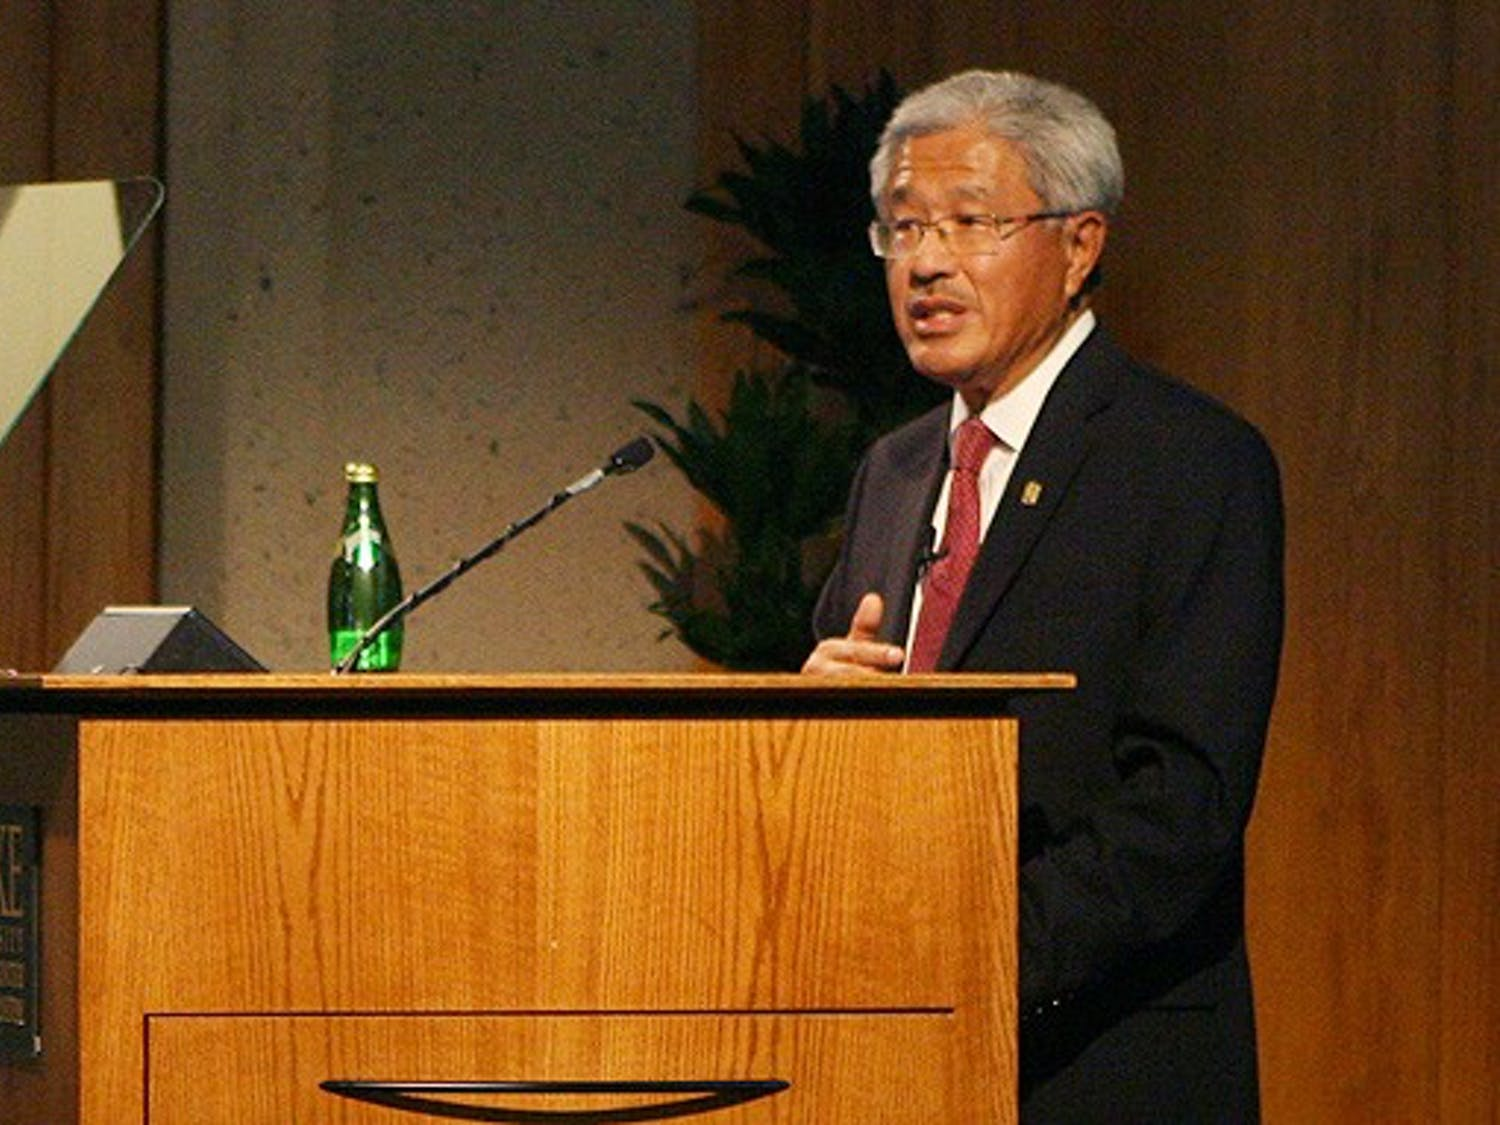 Dr. Victor Dzau, chancellor for health affairs and president and CEO of the Duke University Health System spoke on the state of Duke Medicine Monday.